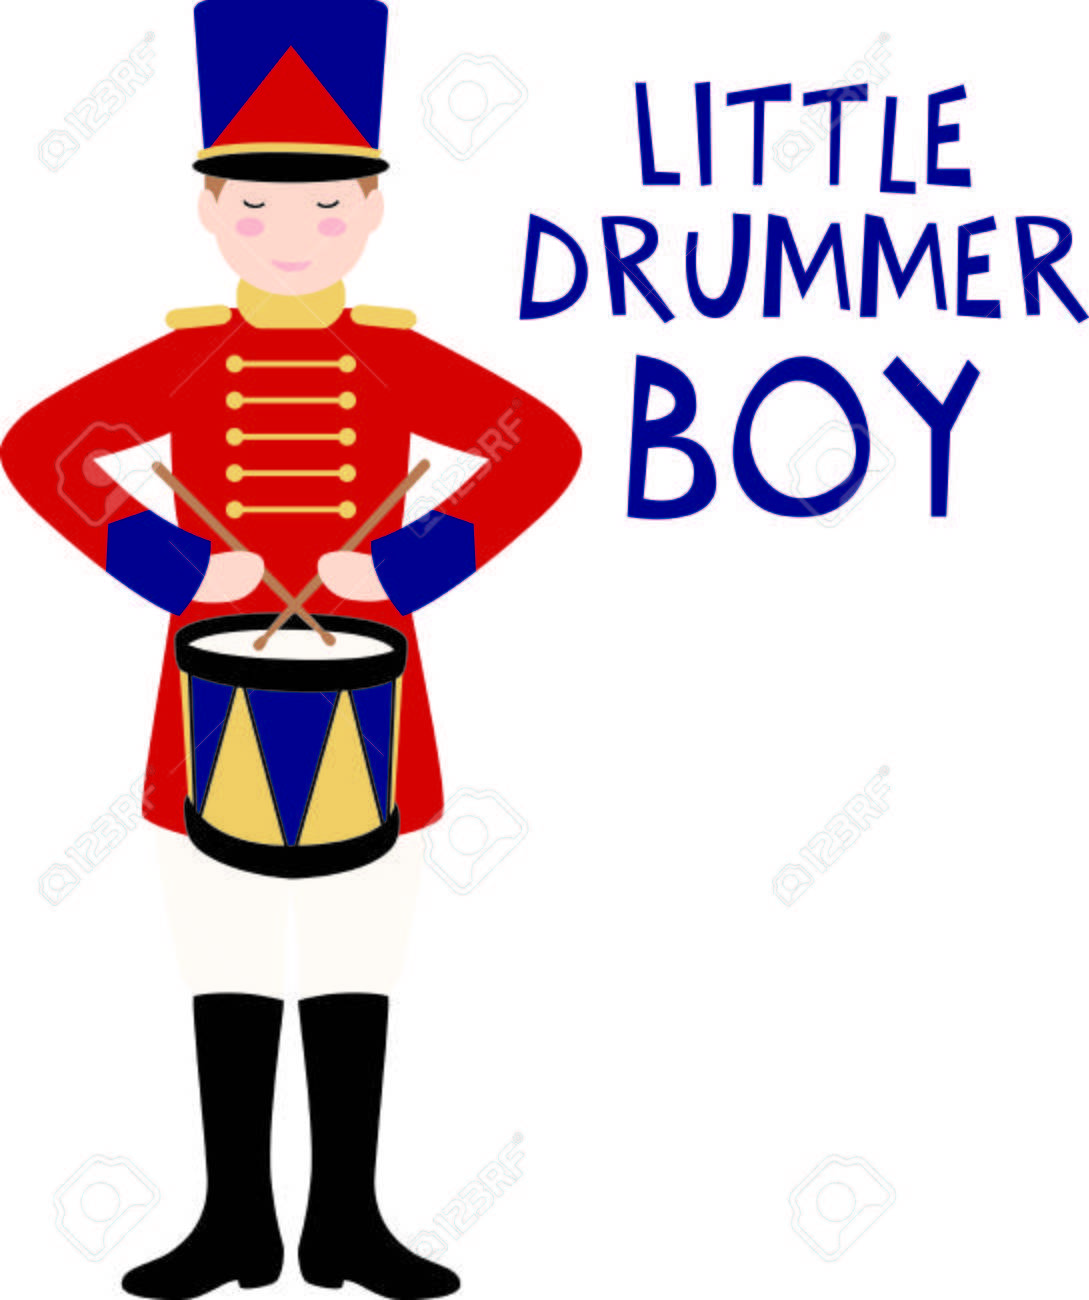 12 drummers drumming clipart 8 » Clipart Portal.